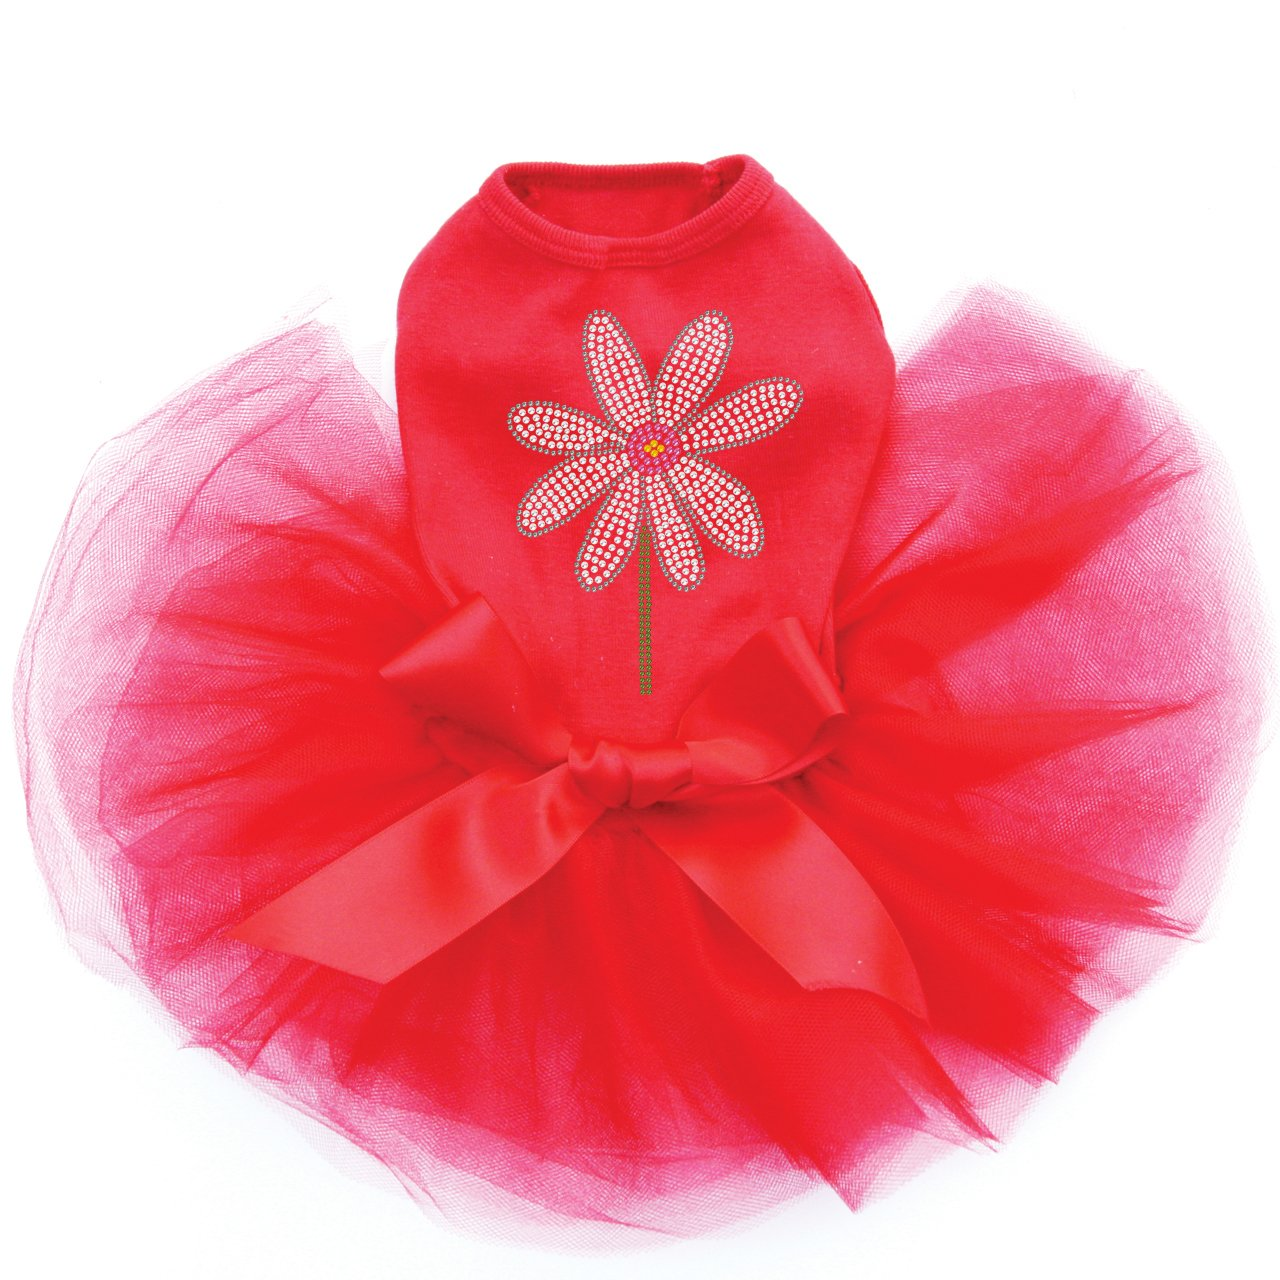 Daisy with Pink Center - Bling Rhinestone Dog Tutu Dress, 3XL Red by Dog in the Closet